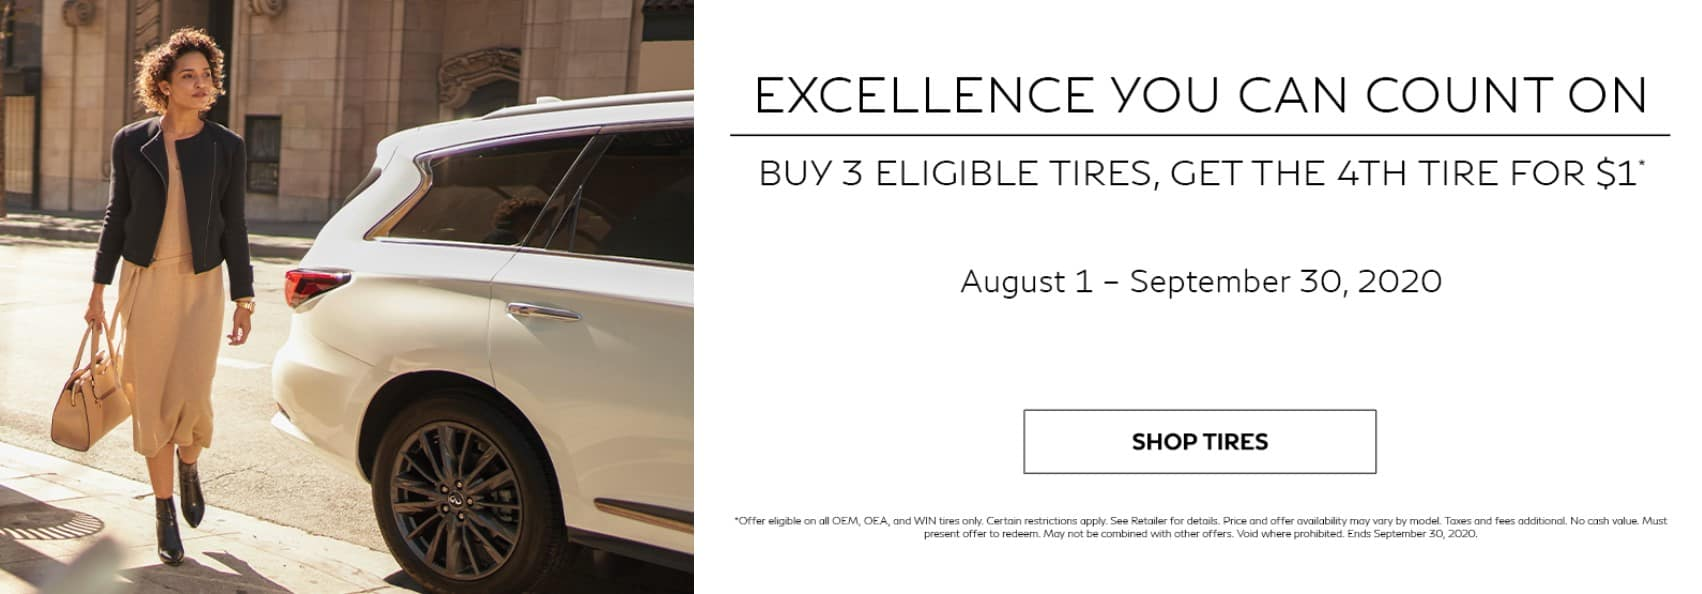 Buy 3 Tires, get the 4th for $1. See retailer for full details. Offer ends 9/30/2020.